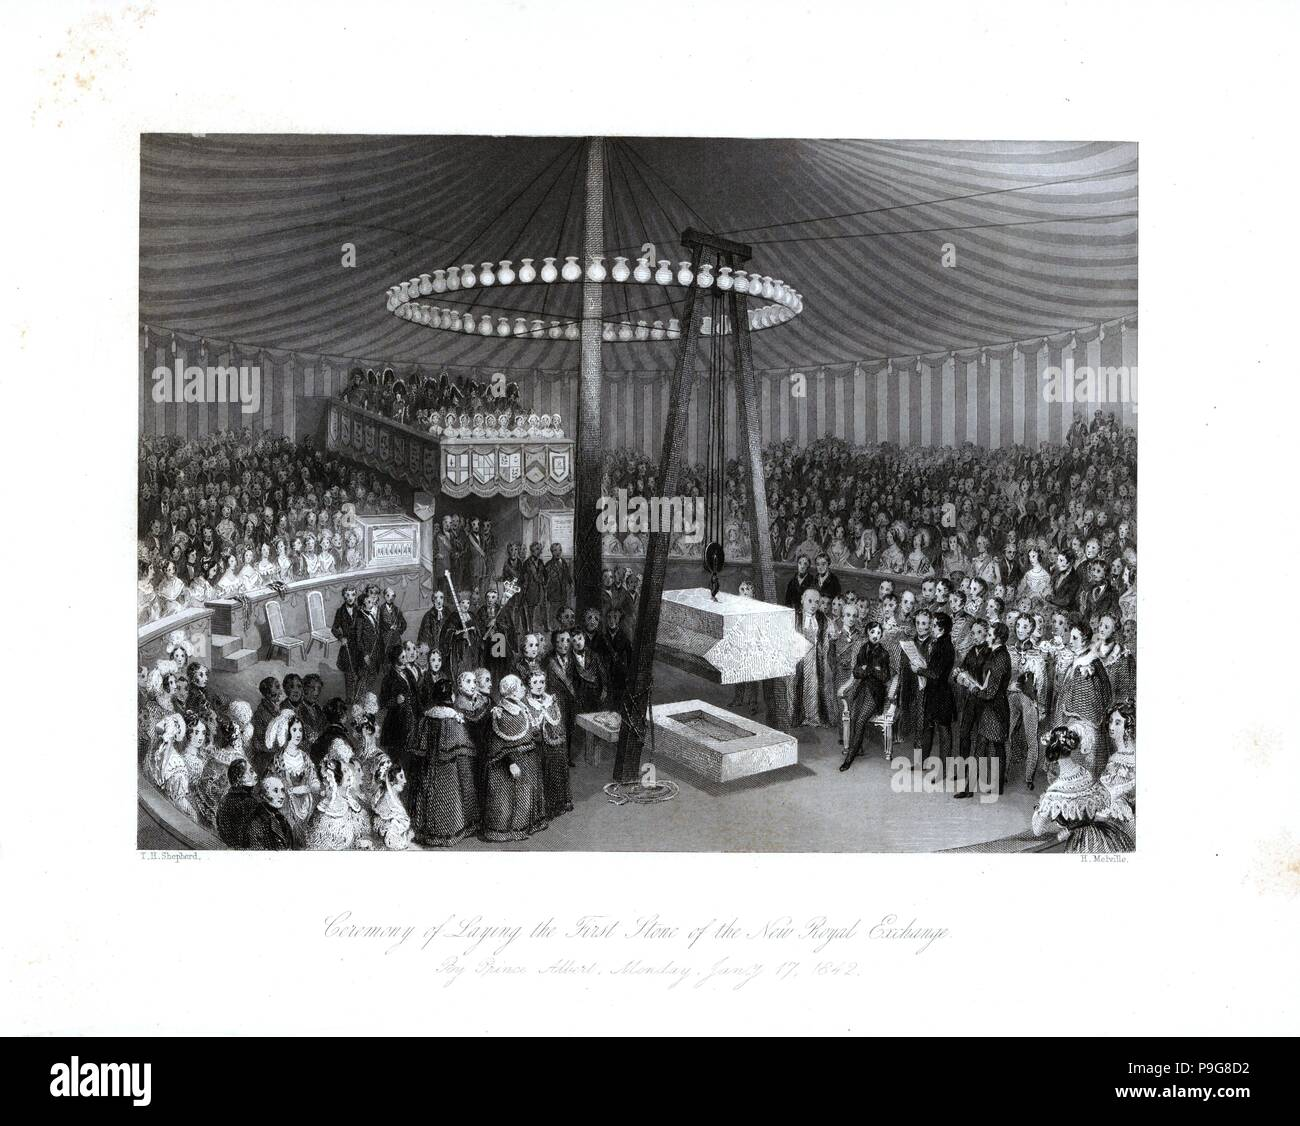 Ceremony of Laying the First Stone of the New Royal Exchange by Prince Albert, January 17, 1842. Steel engraving by Henry Melville after an illustration by L.L. Hewitt from London Interiors, Their Costumes and Ceremonies, Joshua Mead, London, 1841. - Stock Image